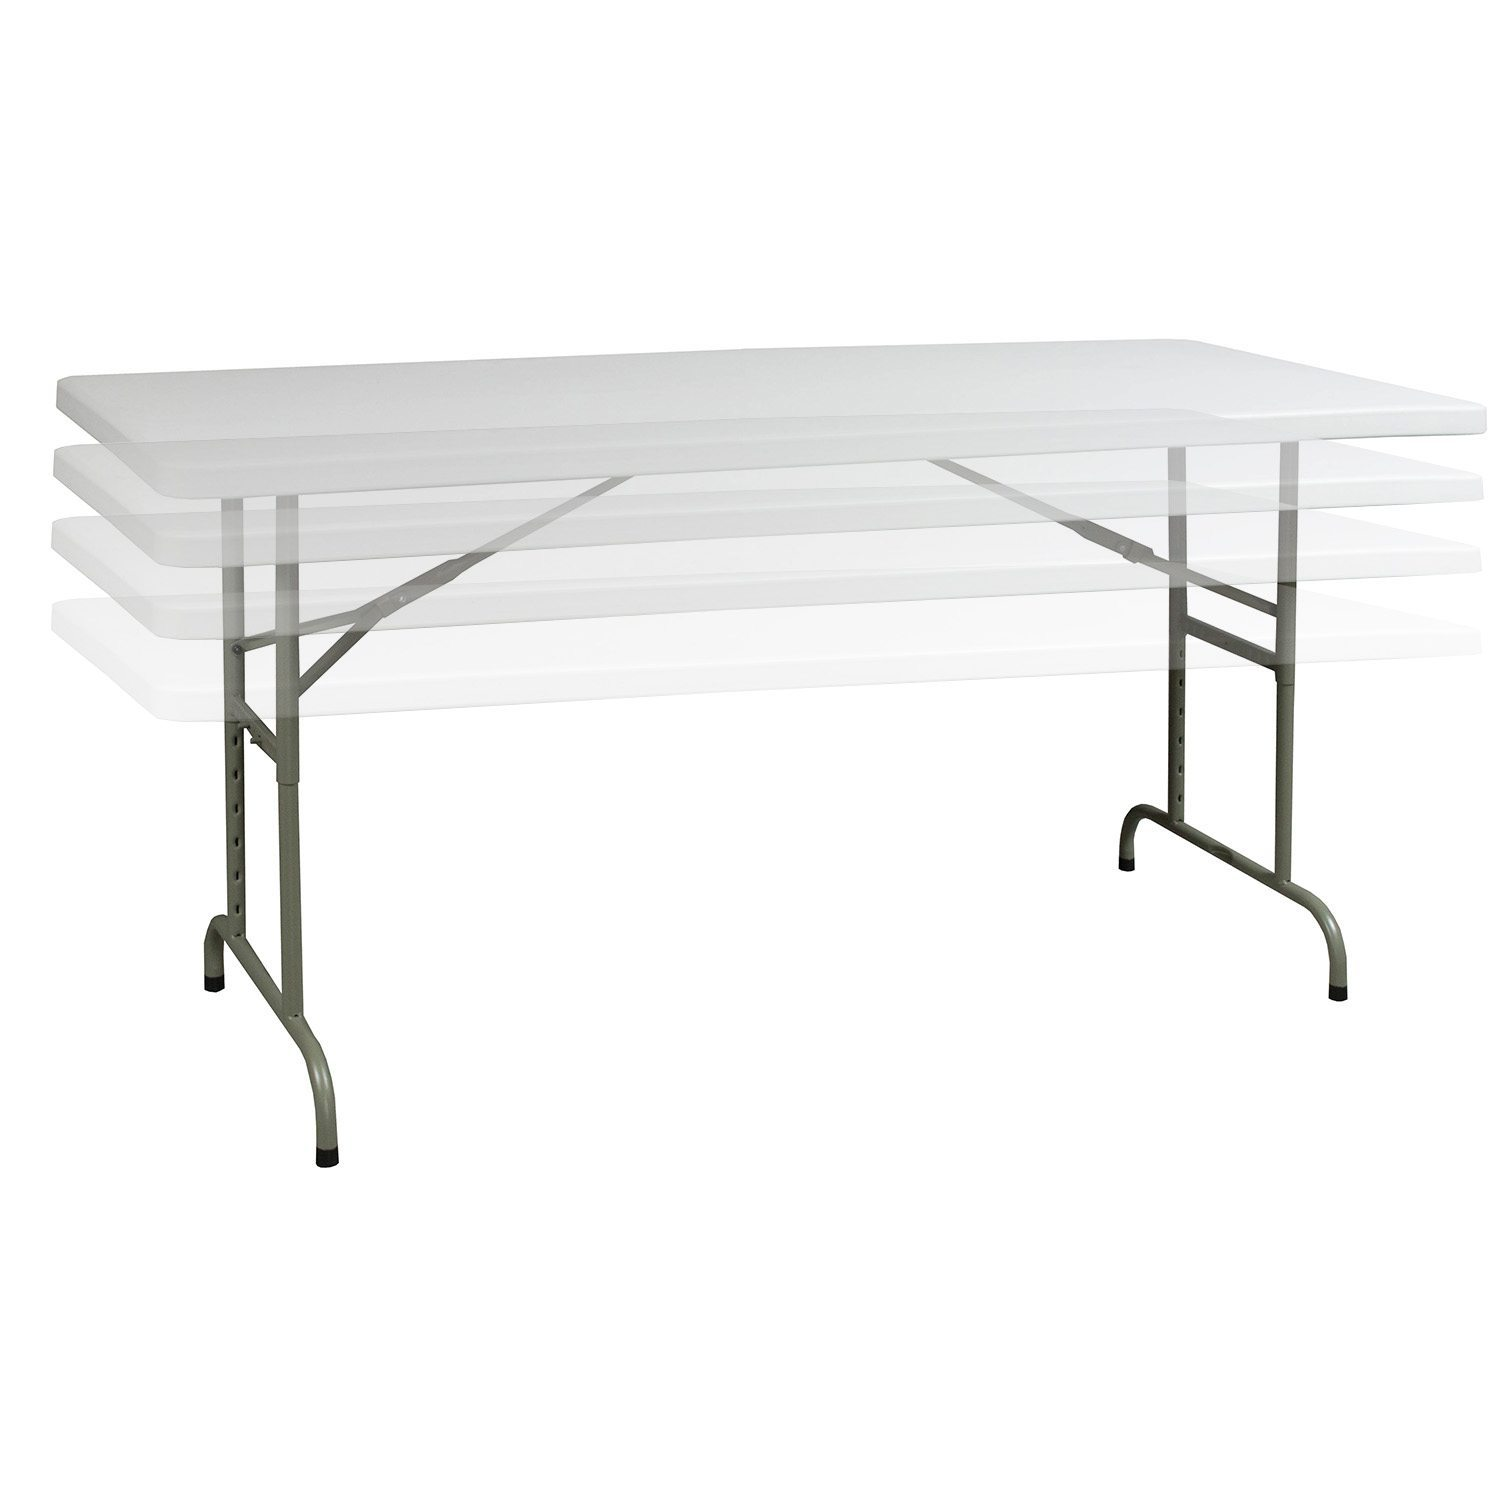 Gosit Adjustable Height Plastic 30 X 72 Folding Table White